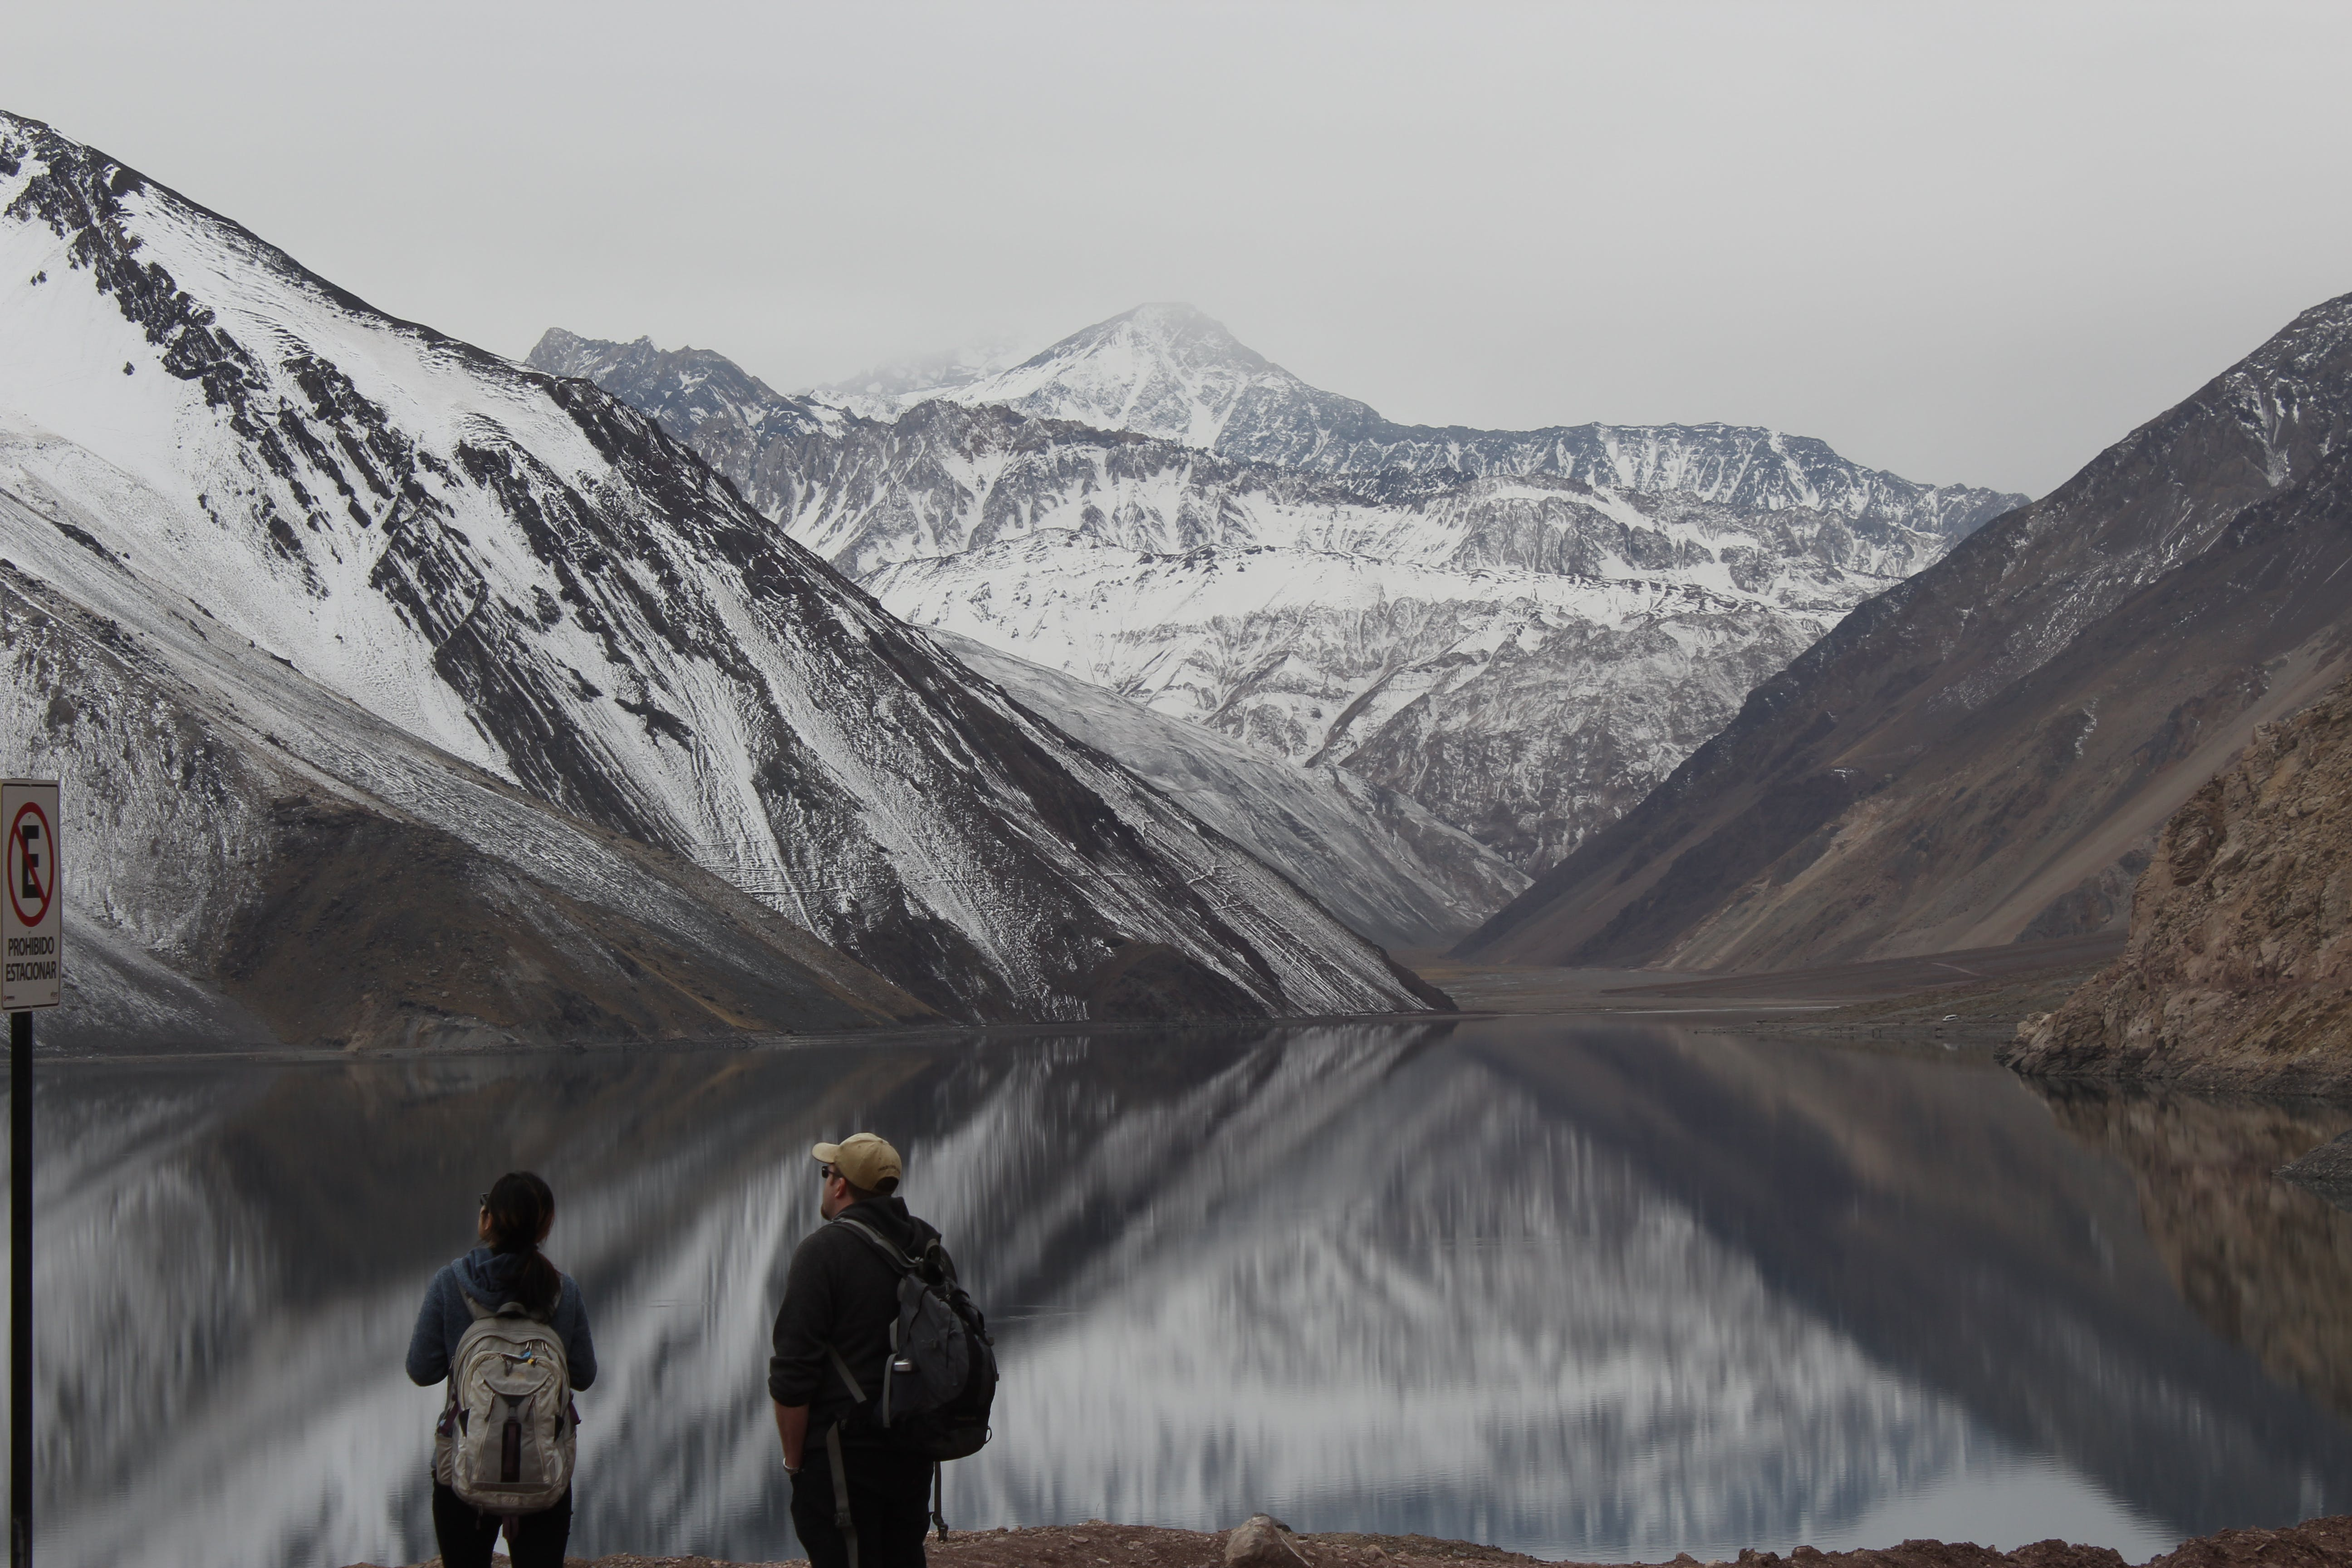 Two Man and Girl Looking at Snow Filled Mountains